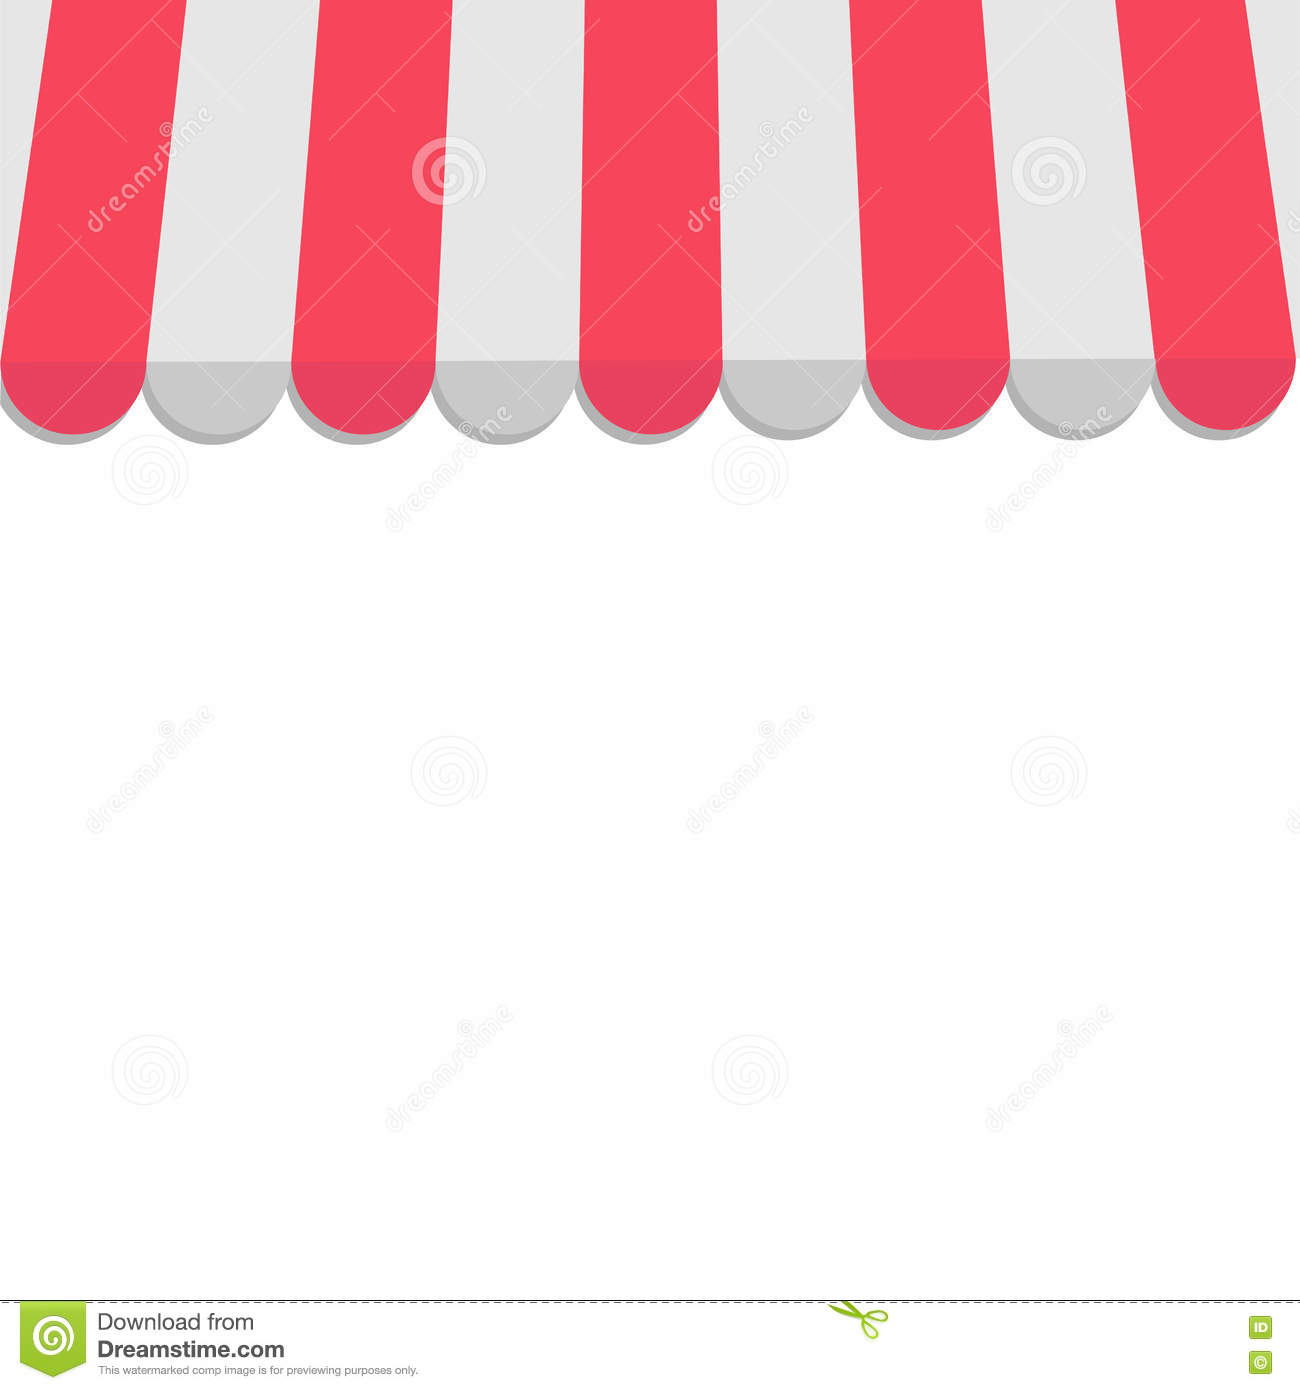 Striped Store Awning For Shop Marketplace Cafe And Restaurant. Red Canopy Roof. Illustration 77231663 - Megapixl  sc 1 st  Megapixl & Striped Store Awning For Shop Marketplace Cafe And Restaurant ...